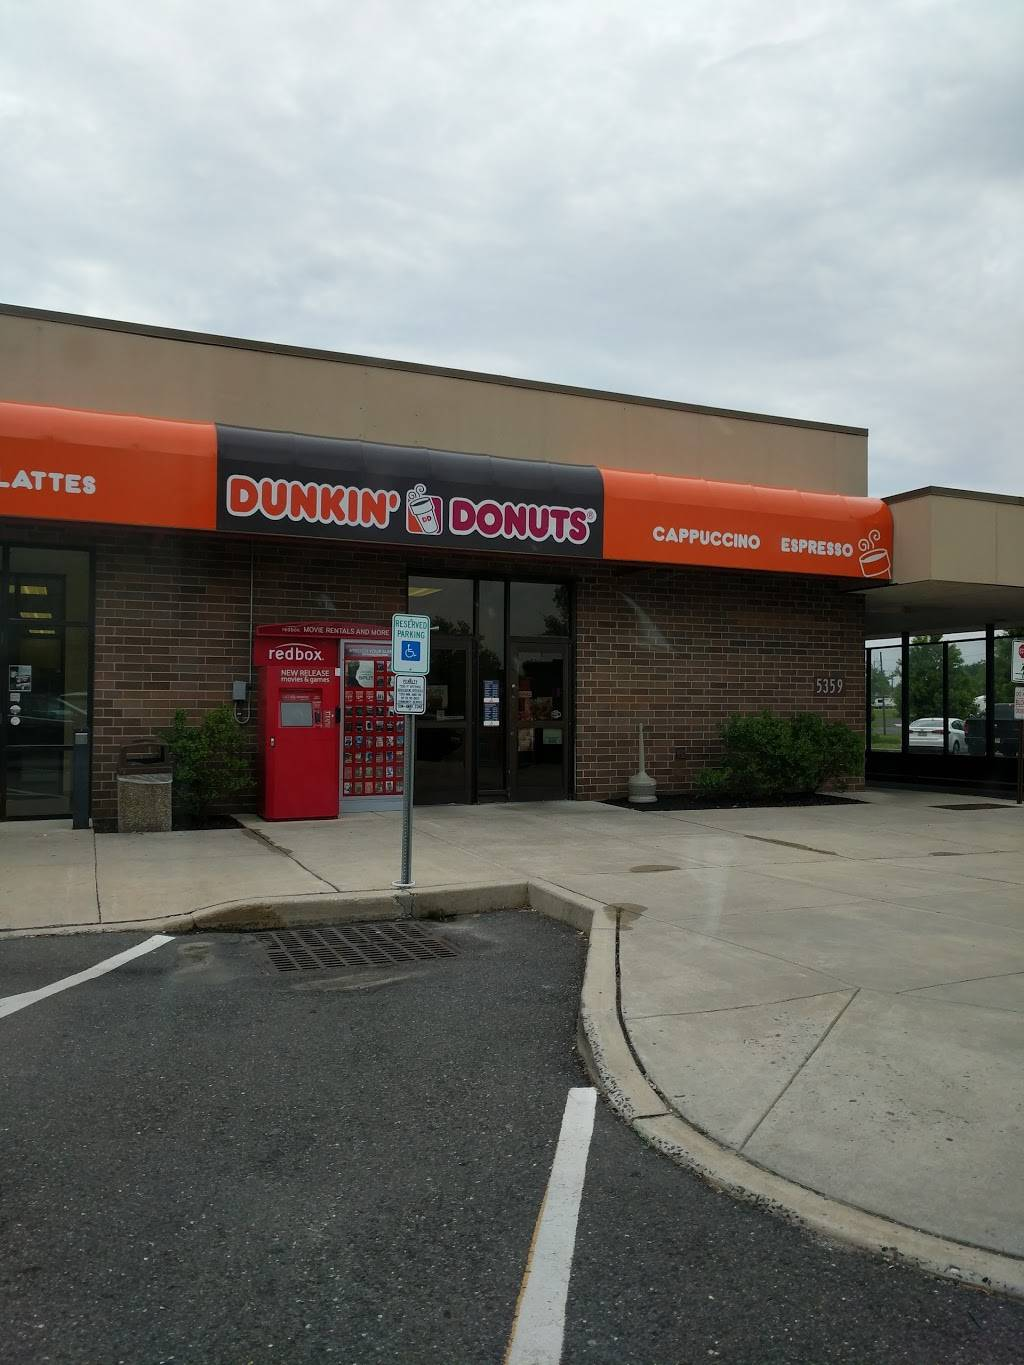 Dunkin Donuts | cafe | 5359 Broidy Rd, Fort Dix, NJ 08640, USA | 6097233450 OR +1 609-723-3450